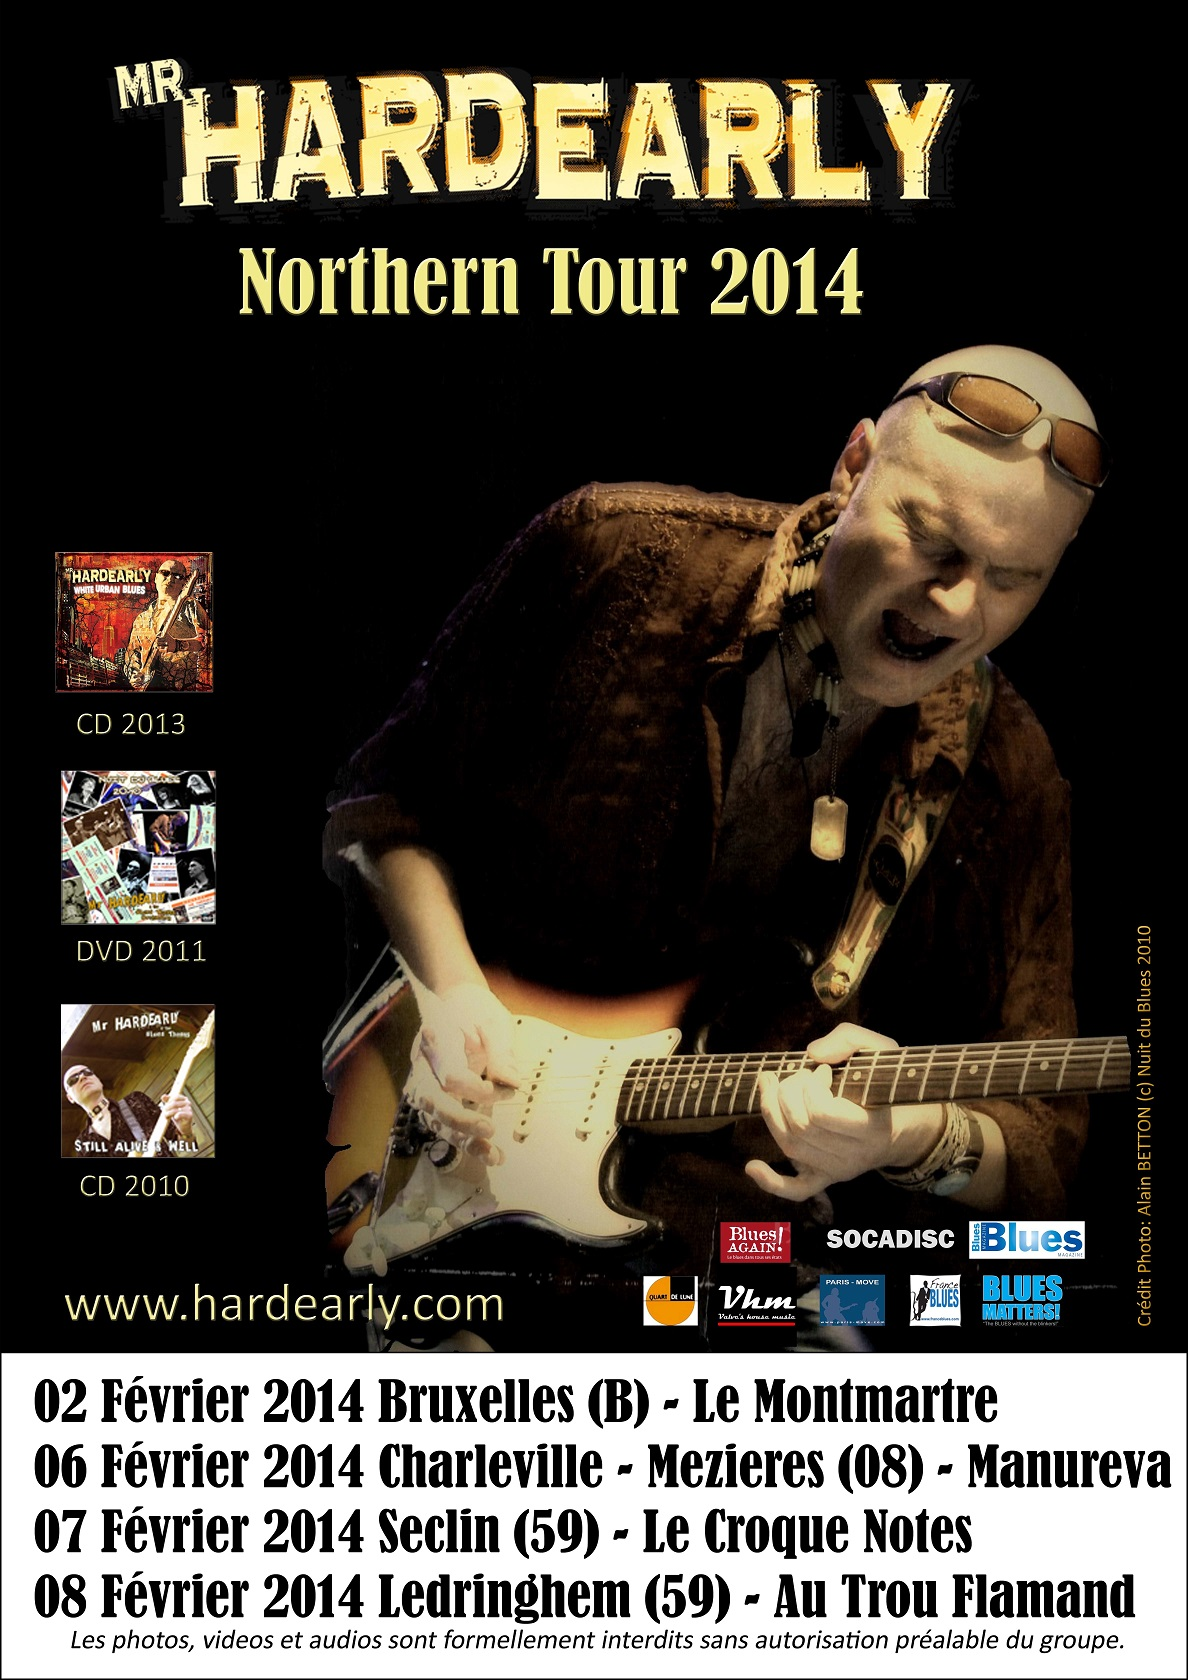 Northern Tour 2014